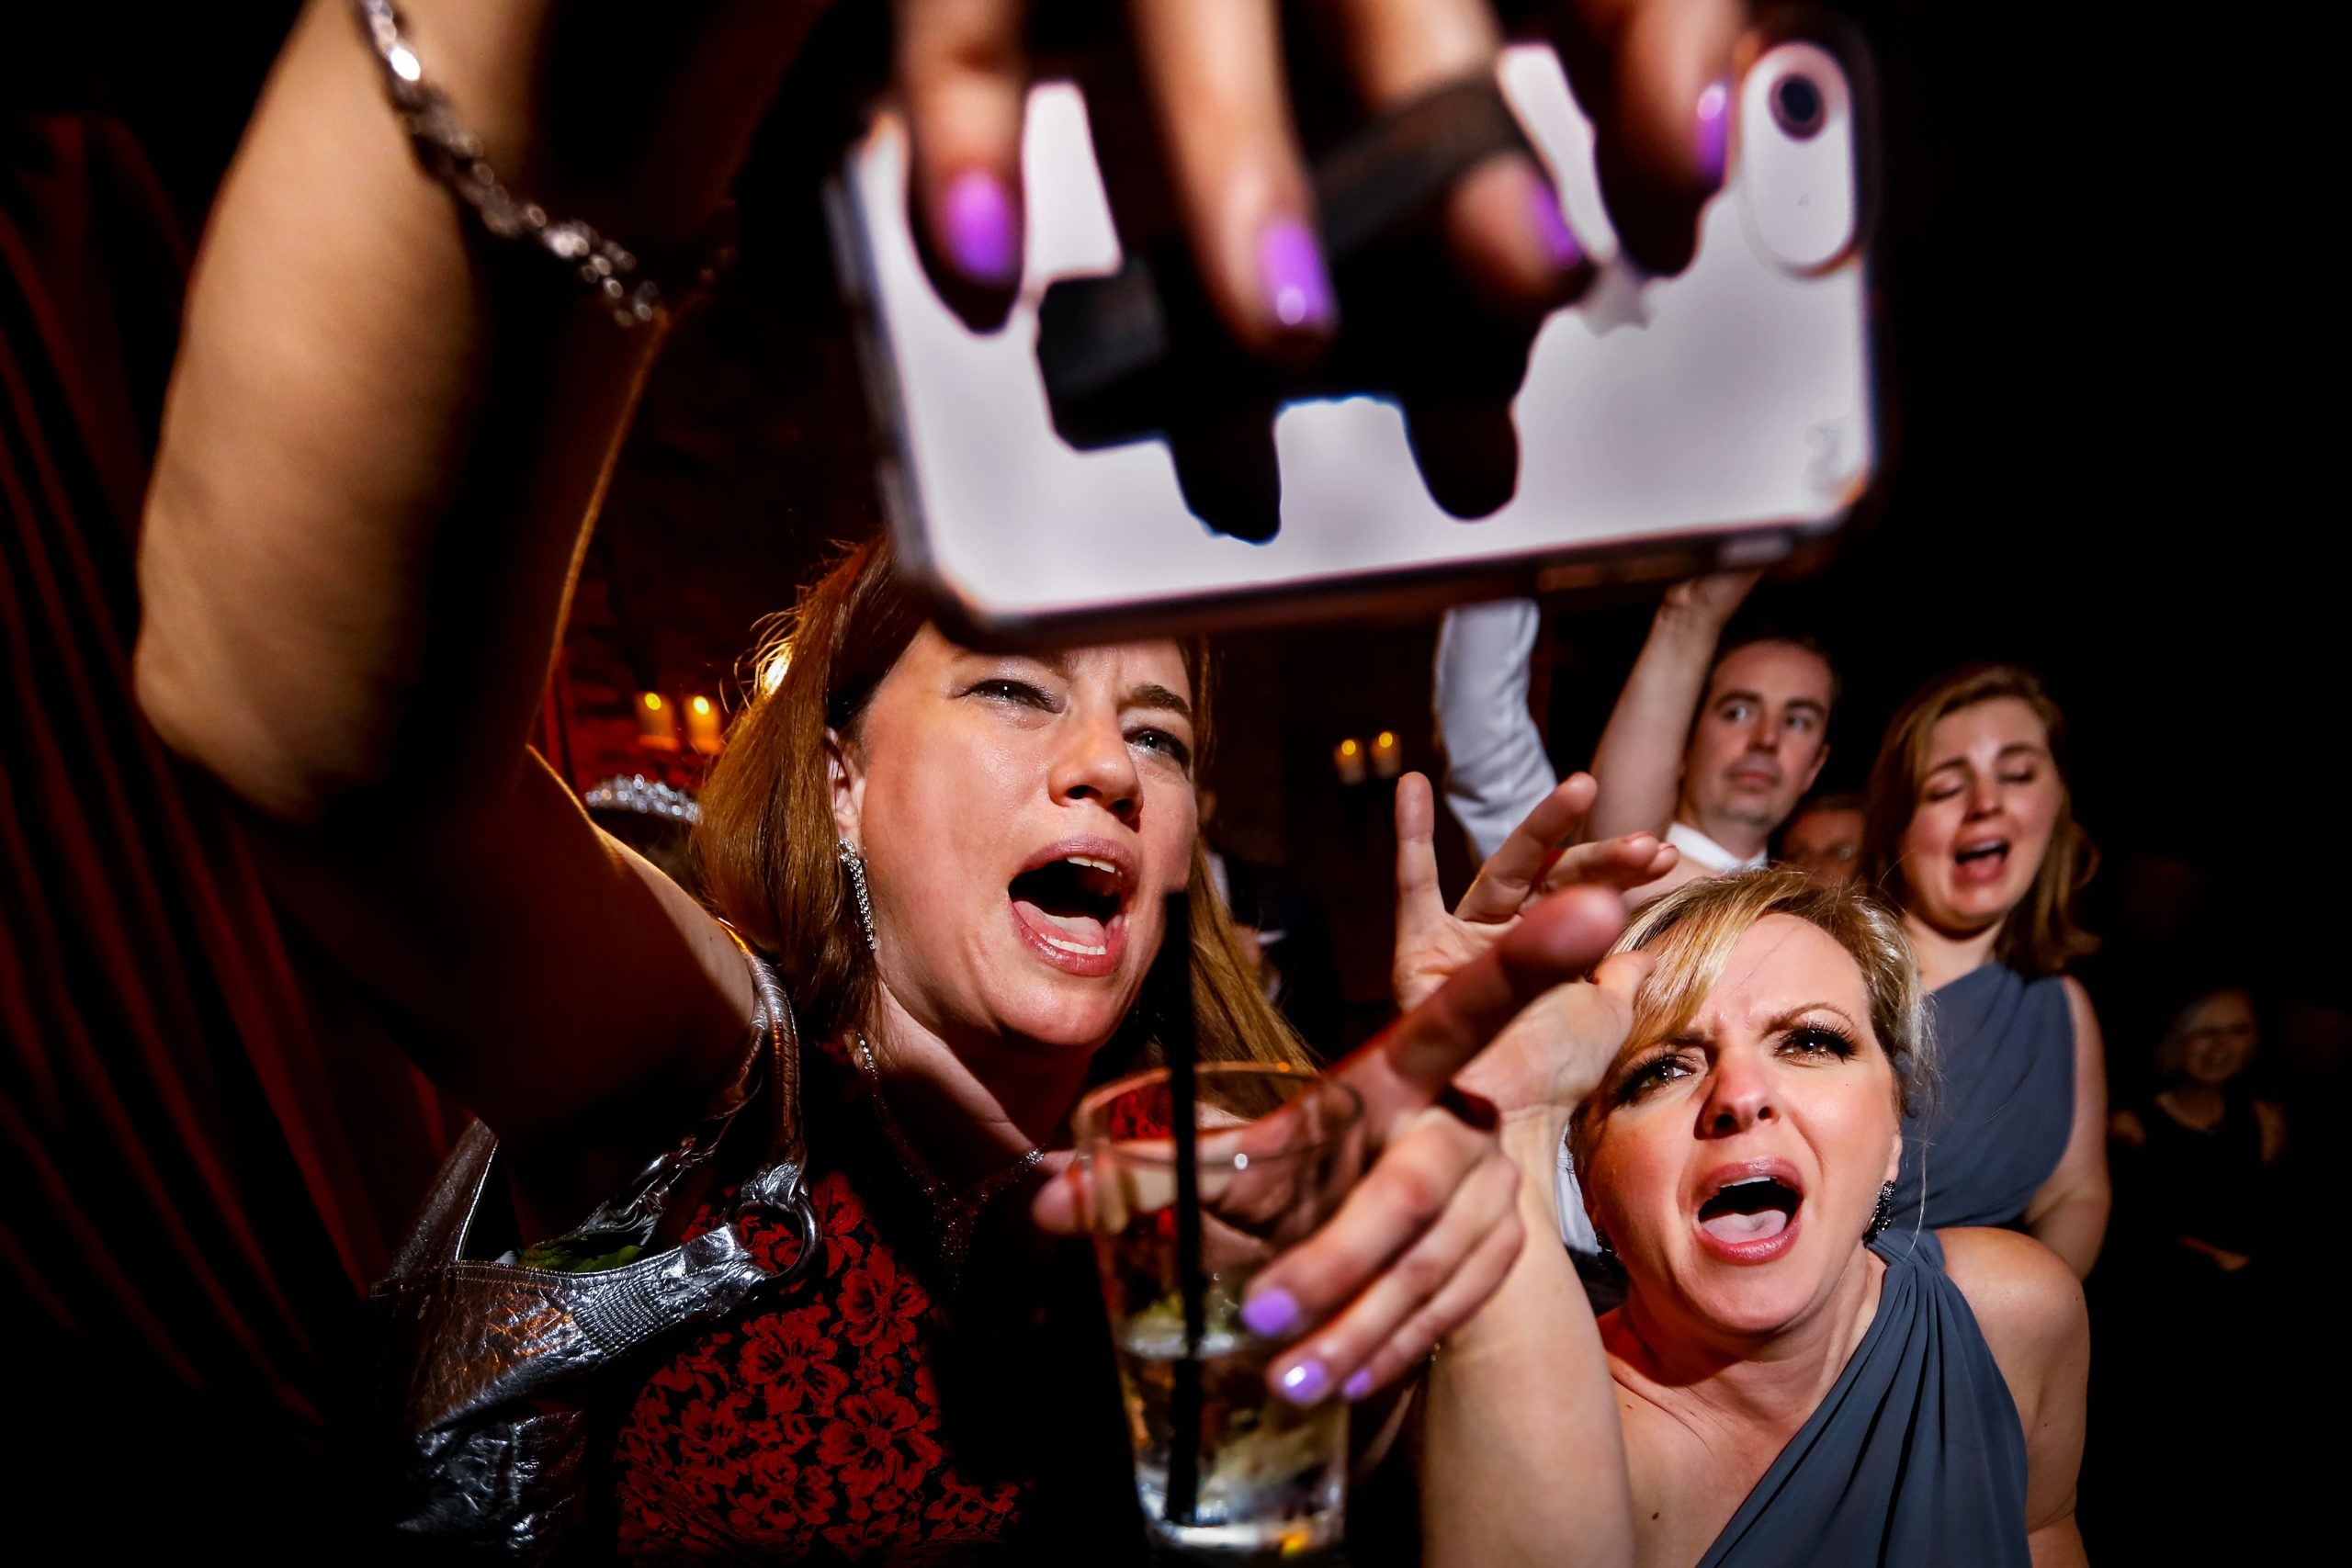 Wedding guests take a selfie while partying